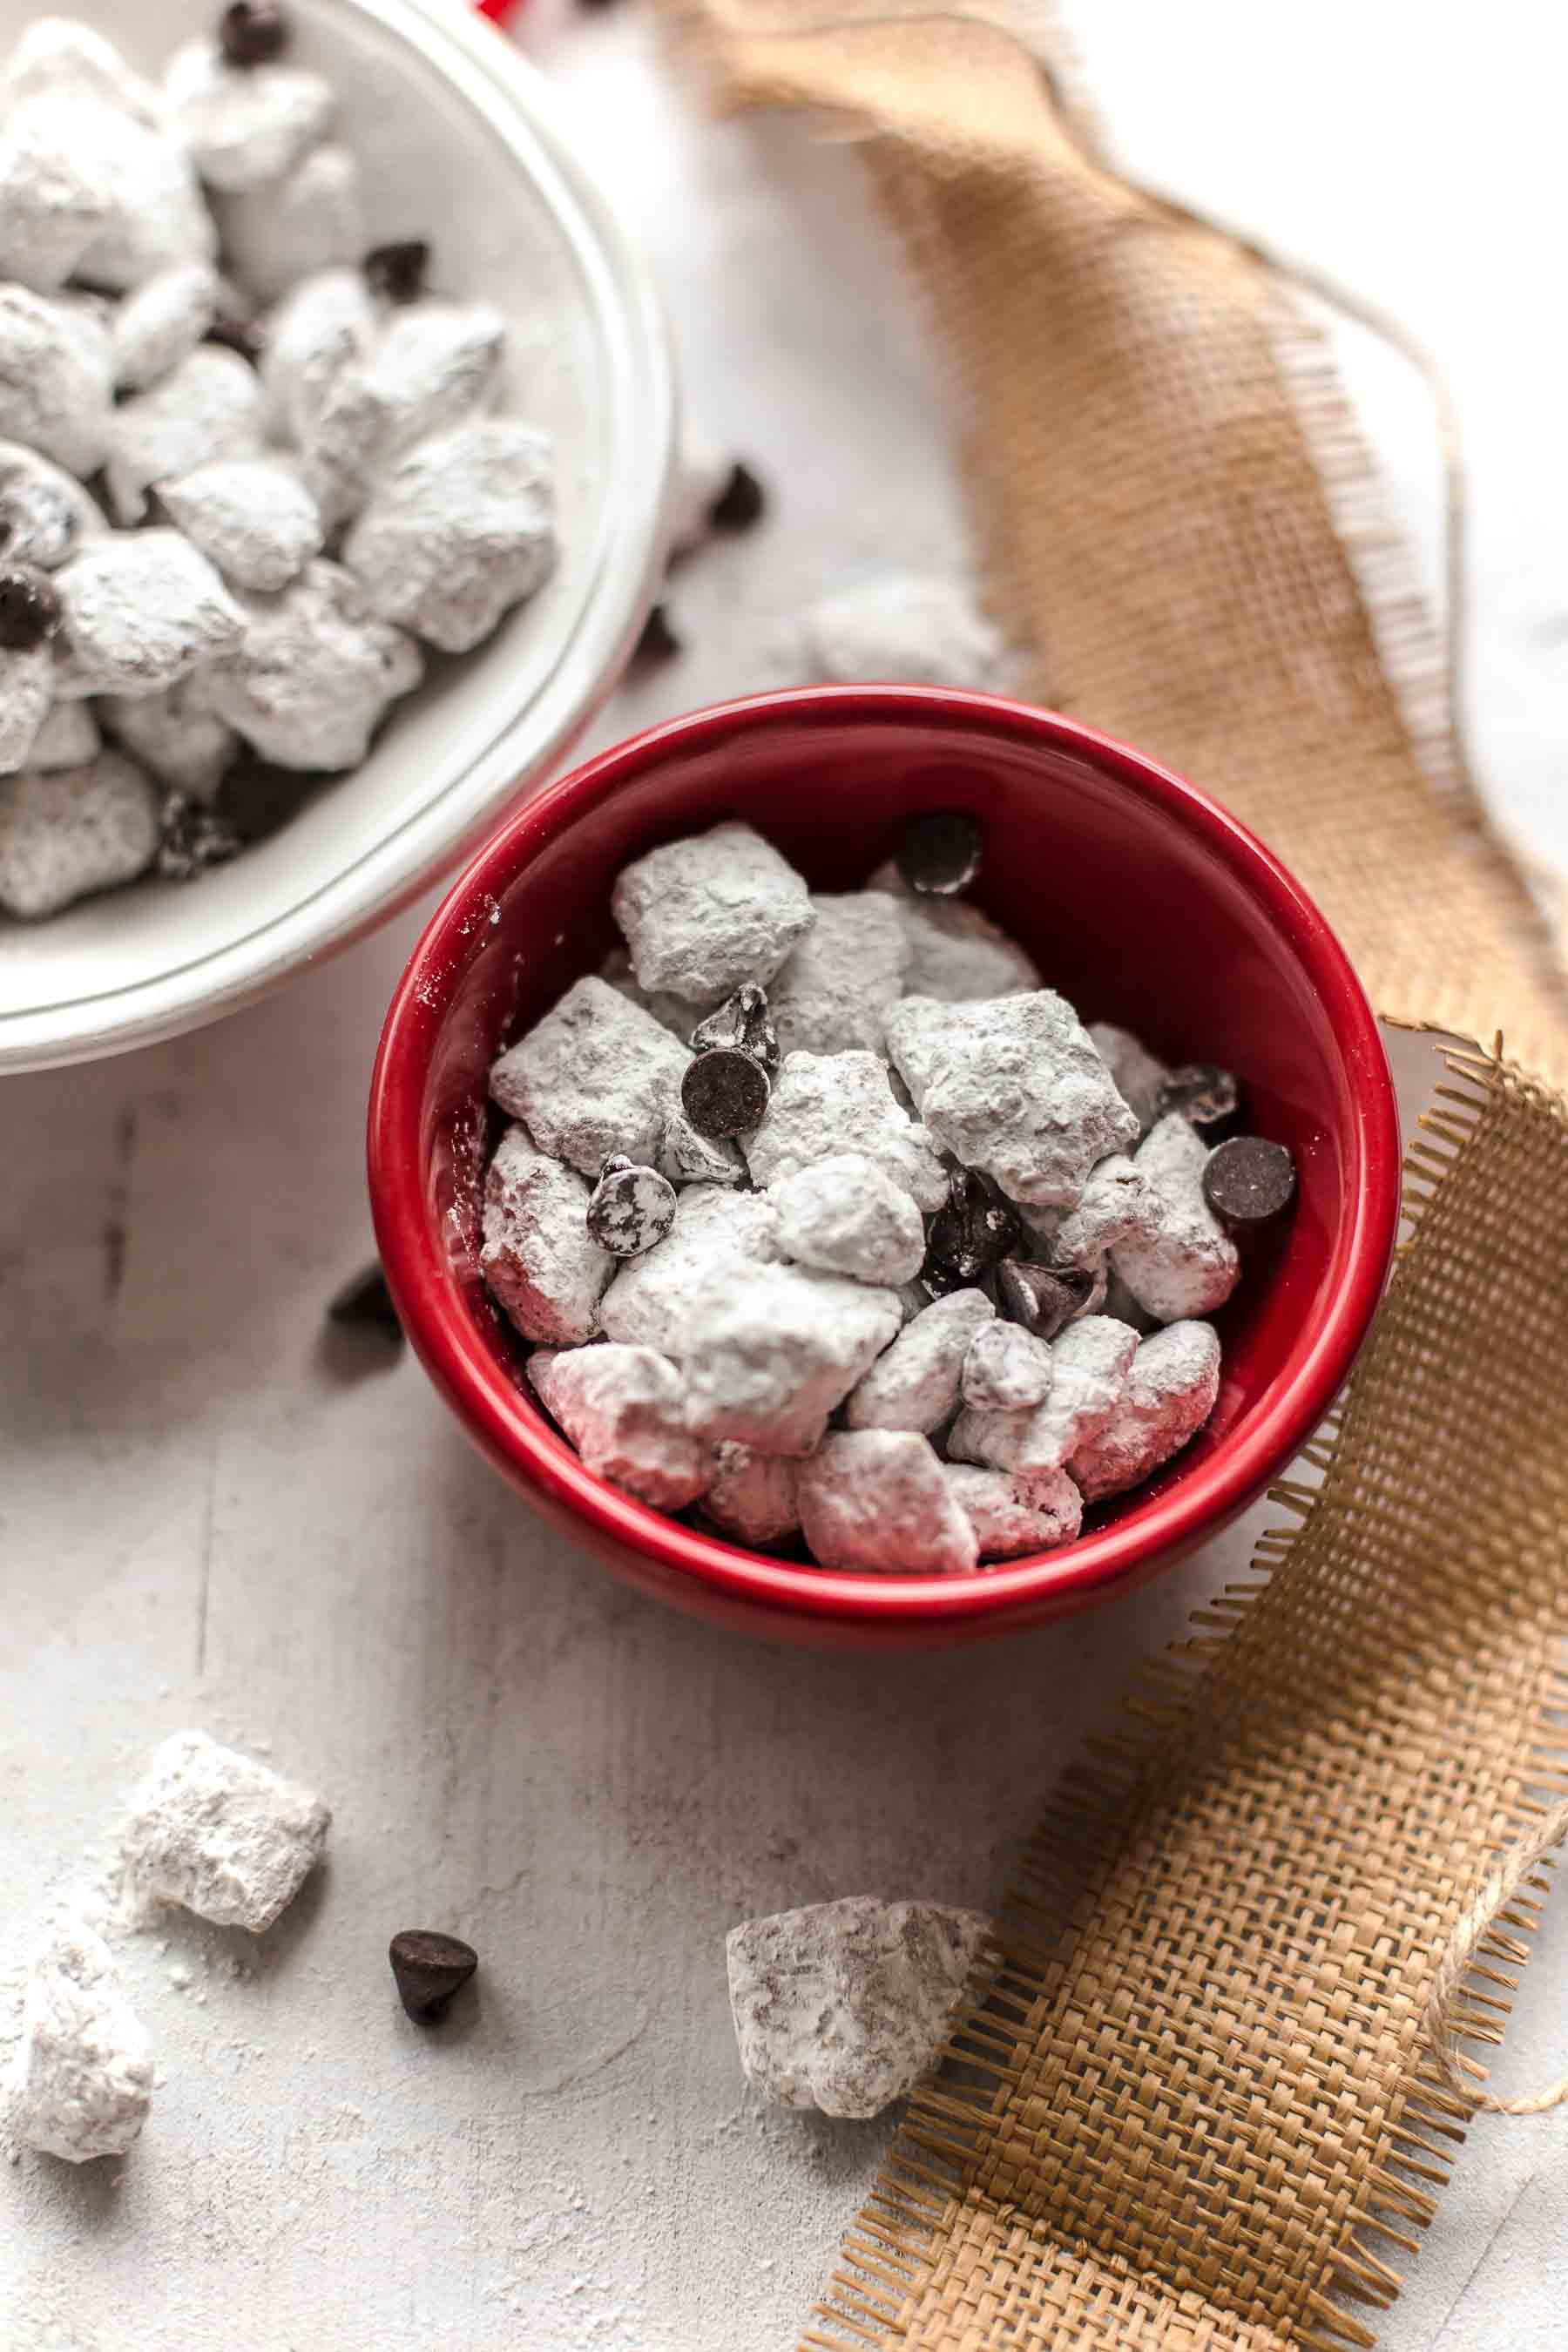 small red bowl of puppy chow next to a larger white bowl